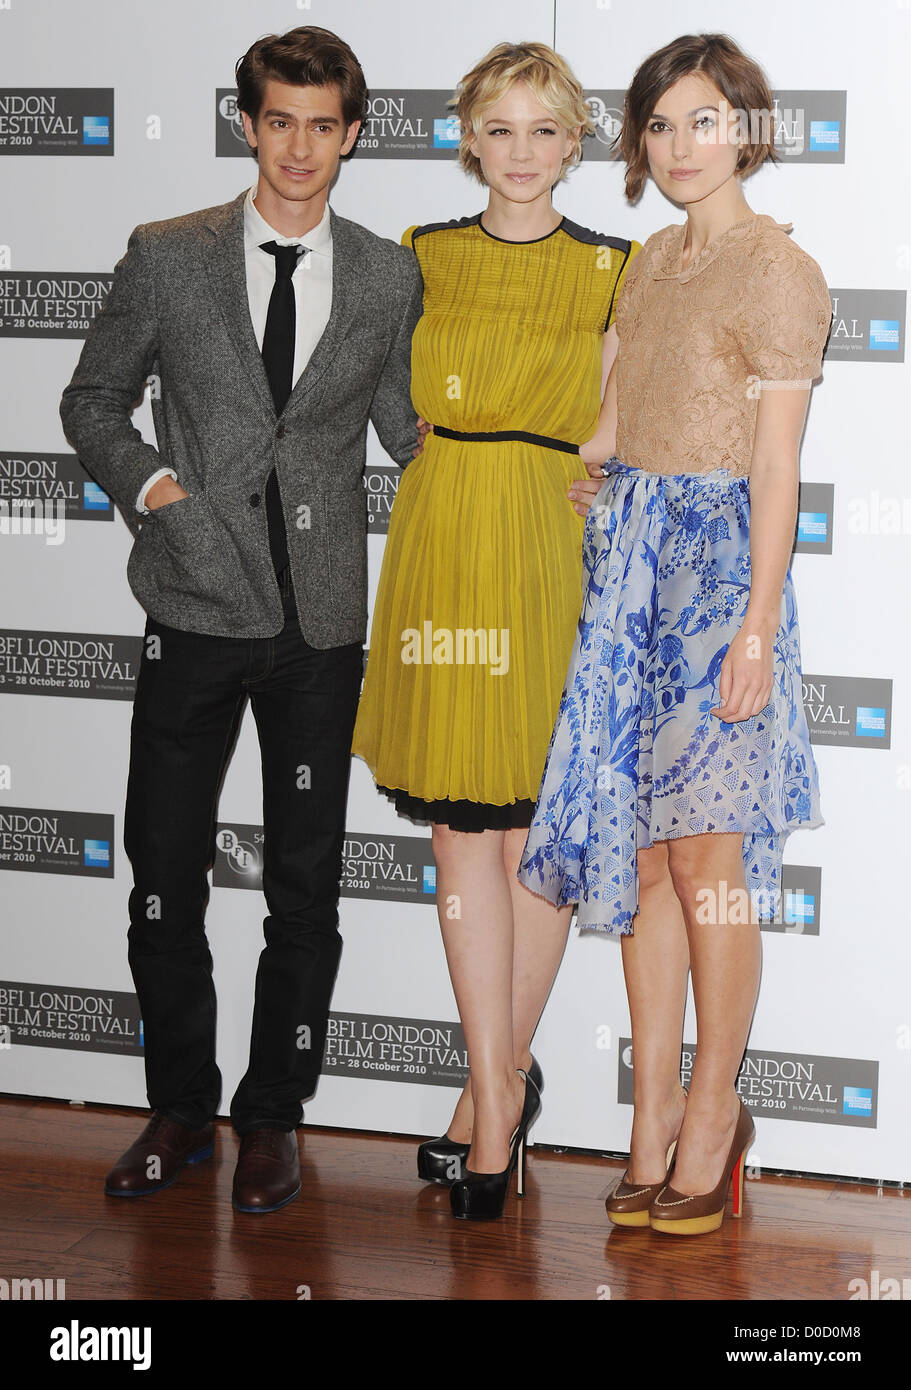 Andrew Garfield, Carey Mulligan and Keira Knightley The 54th Times BFI London Film Festival - Never Let Me Go - - Stock Image